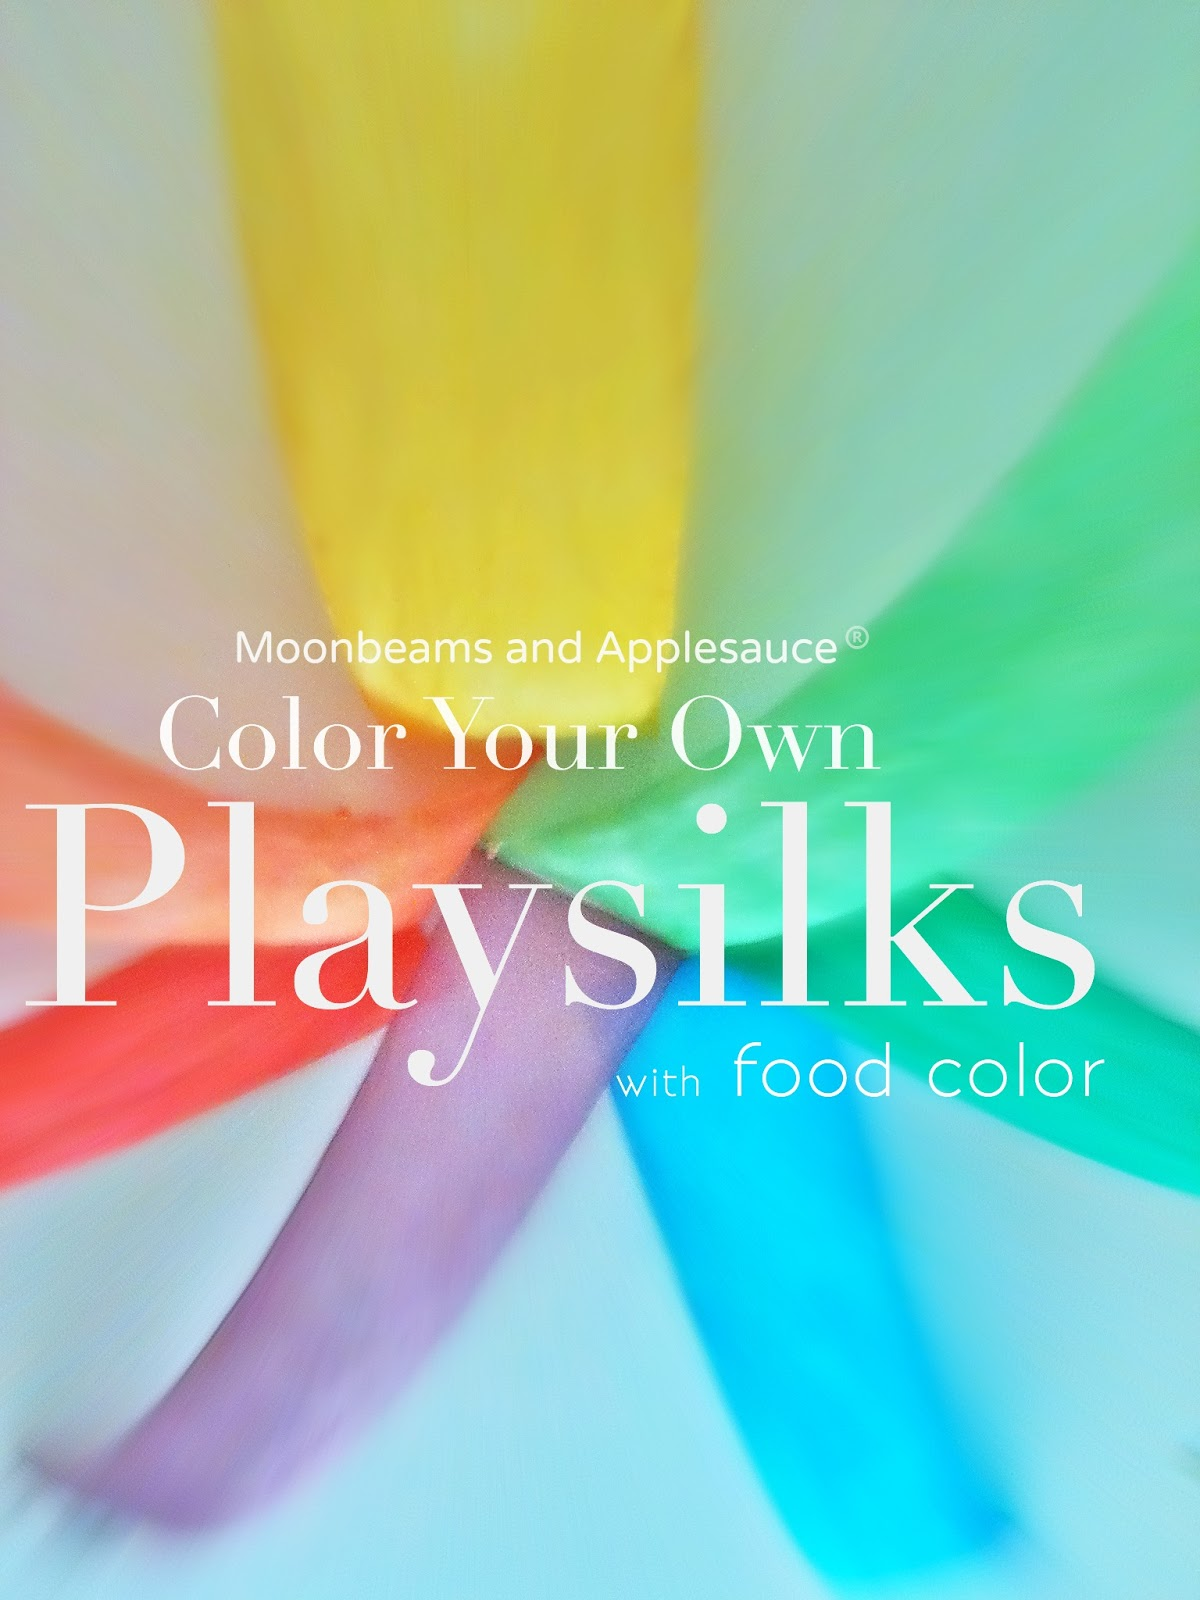 Color Your Own Playsilks With Food Coloring